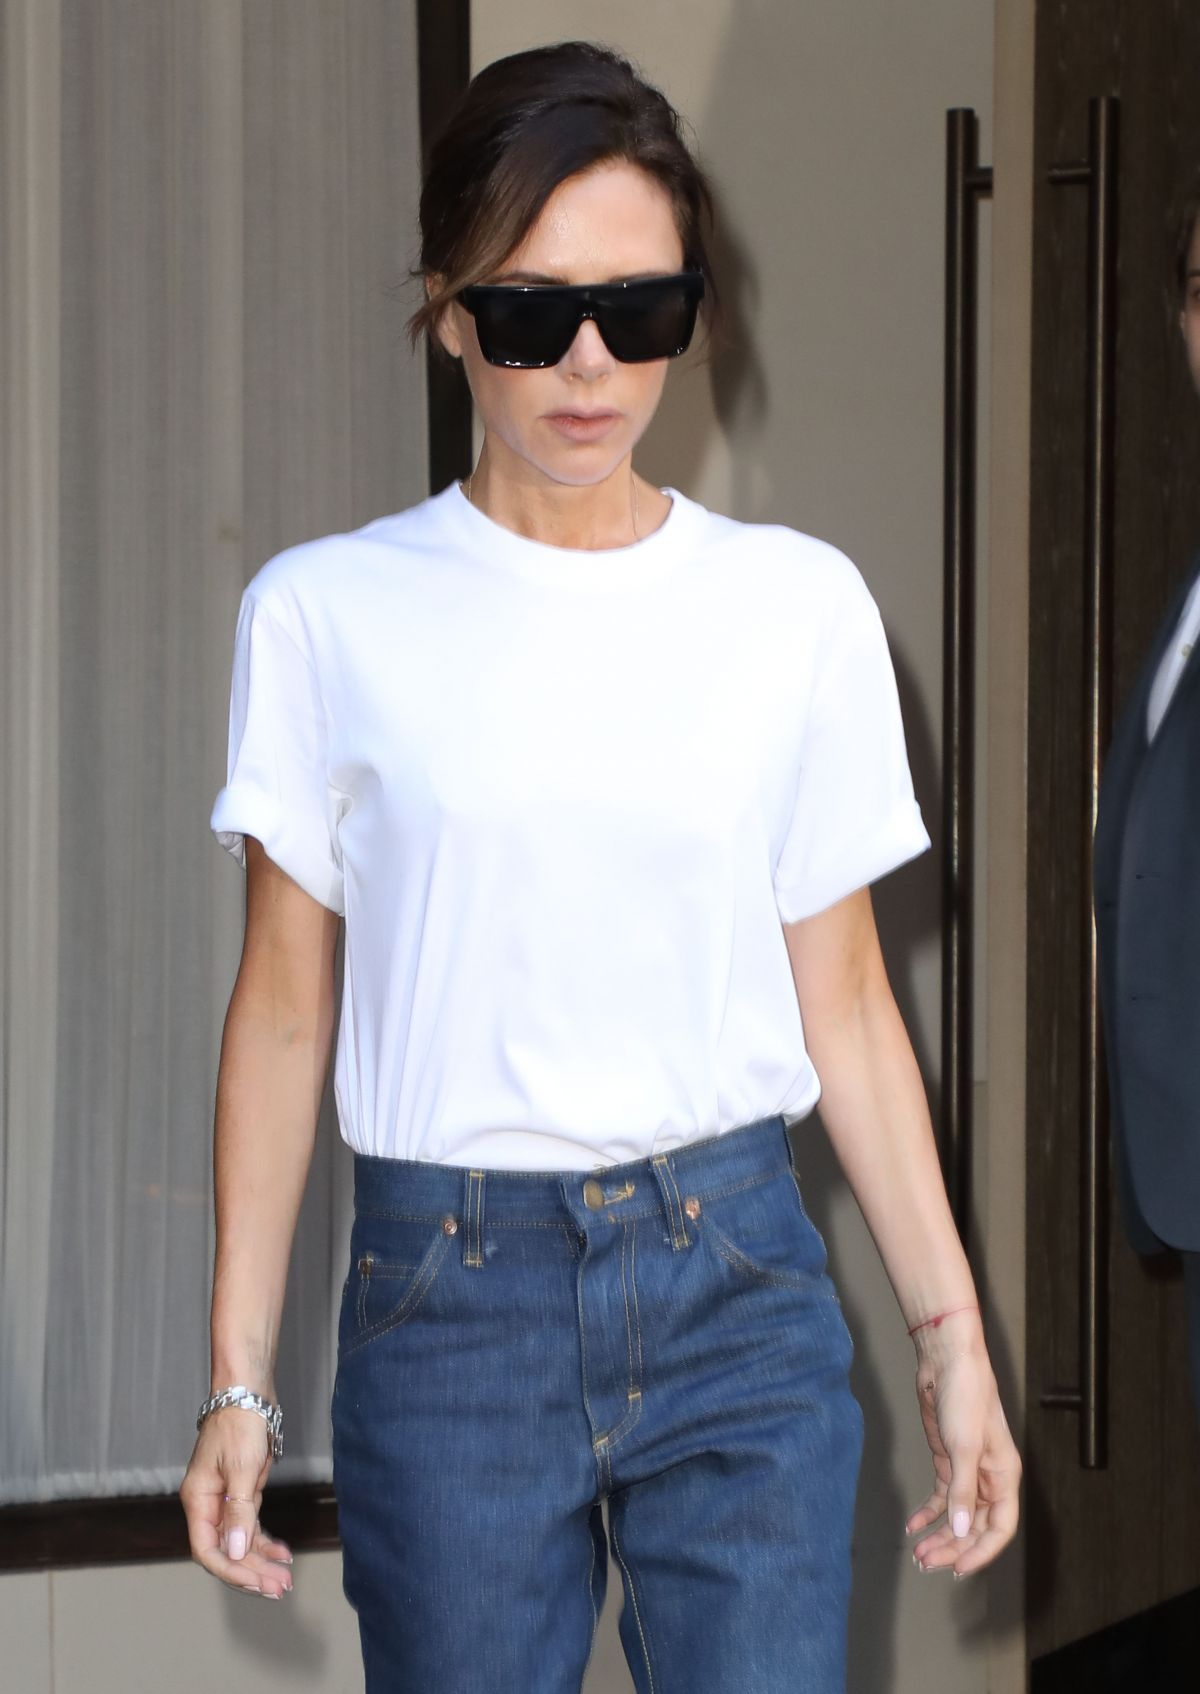 VICTORIA BECKHAM Leaves Edition Hotel in New York 09/07/2017